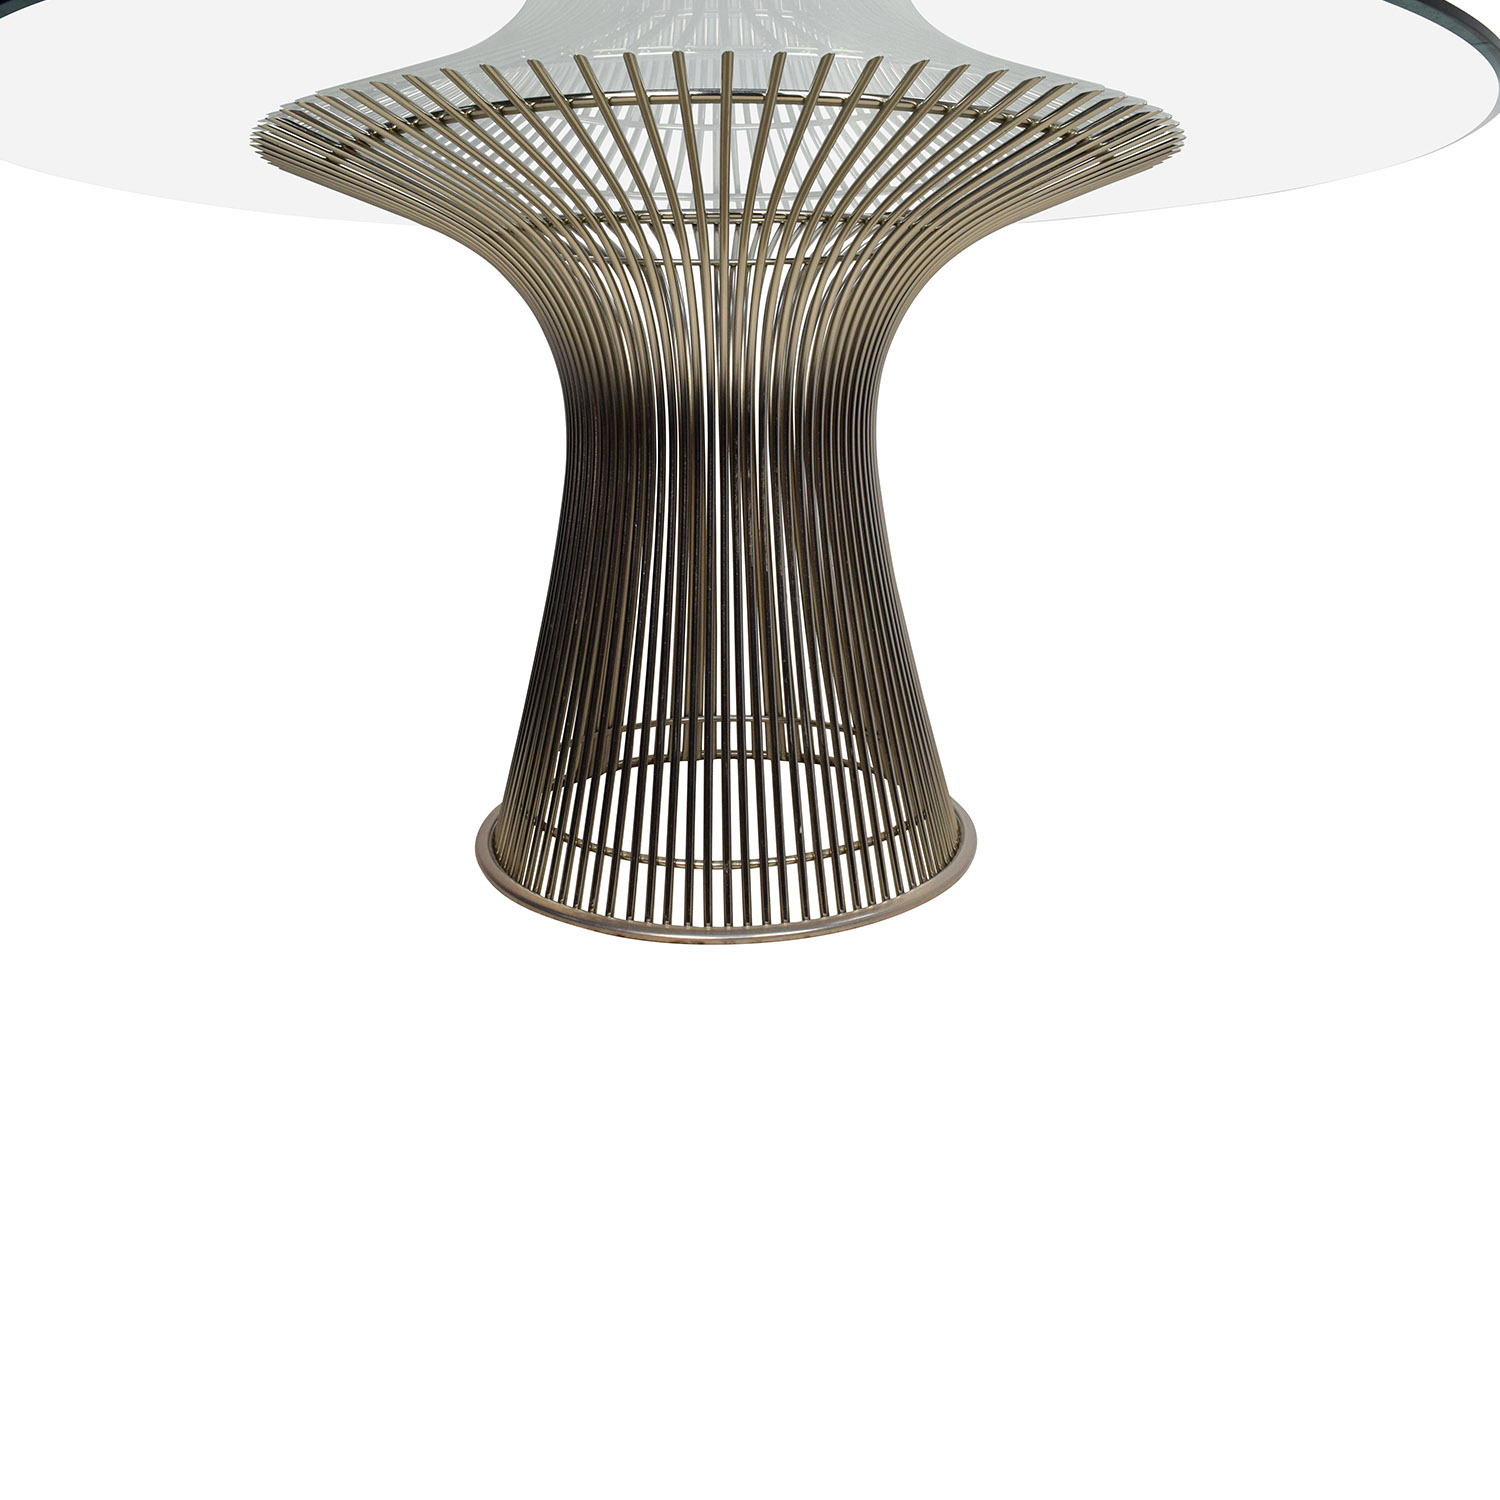 51 OFF  Design Within Reach Design Within Reach Platner